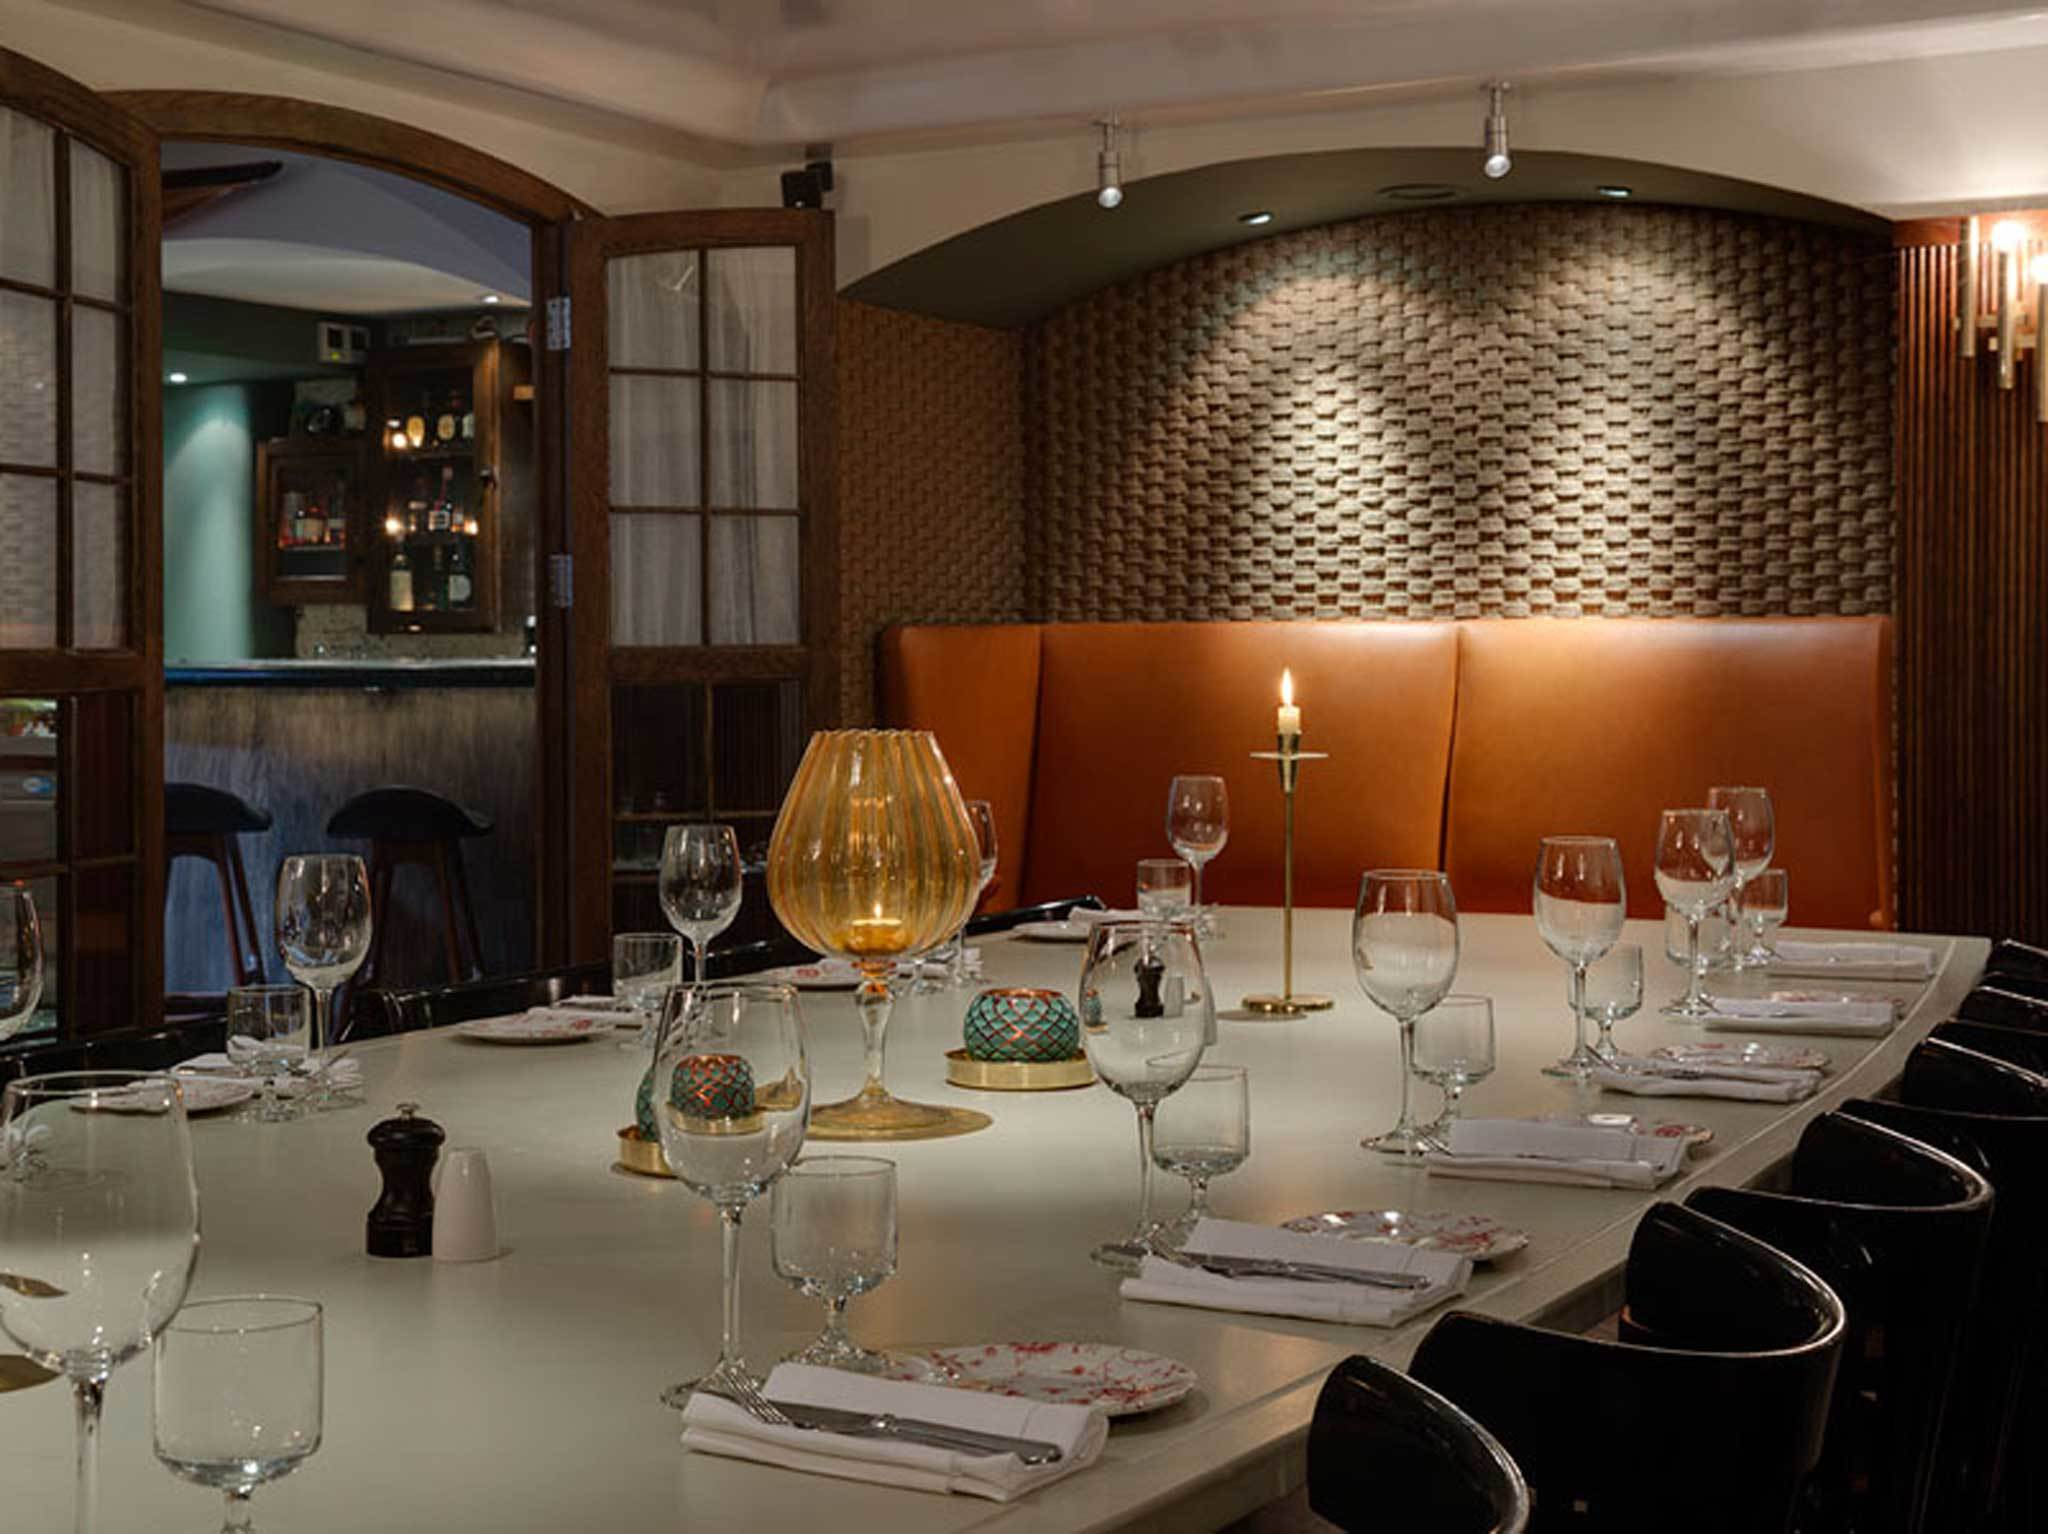 The best private dining rooms in London - Blixen